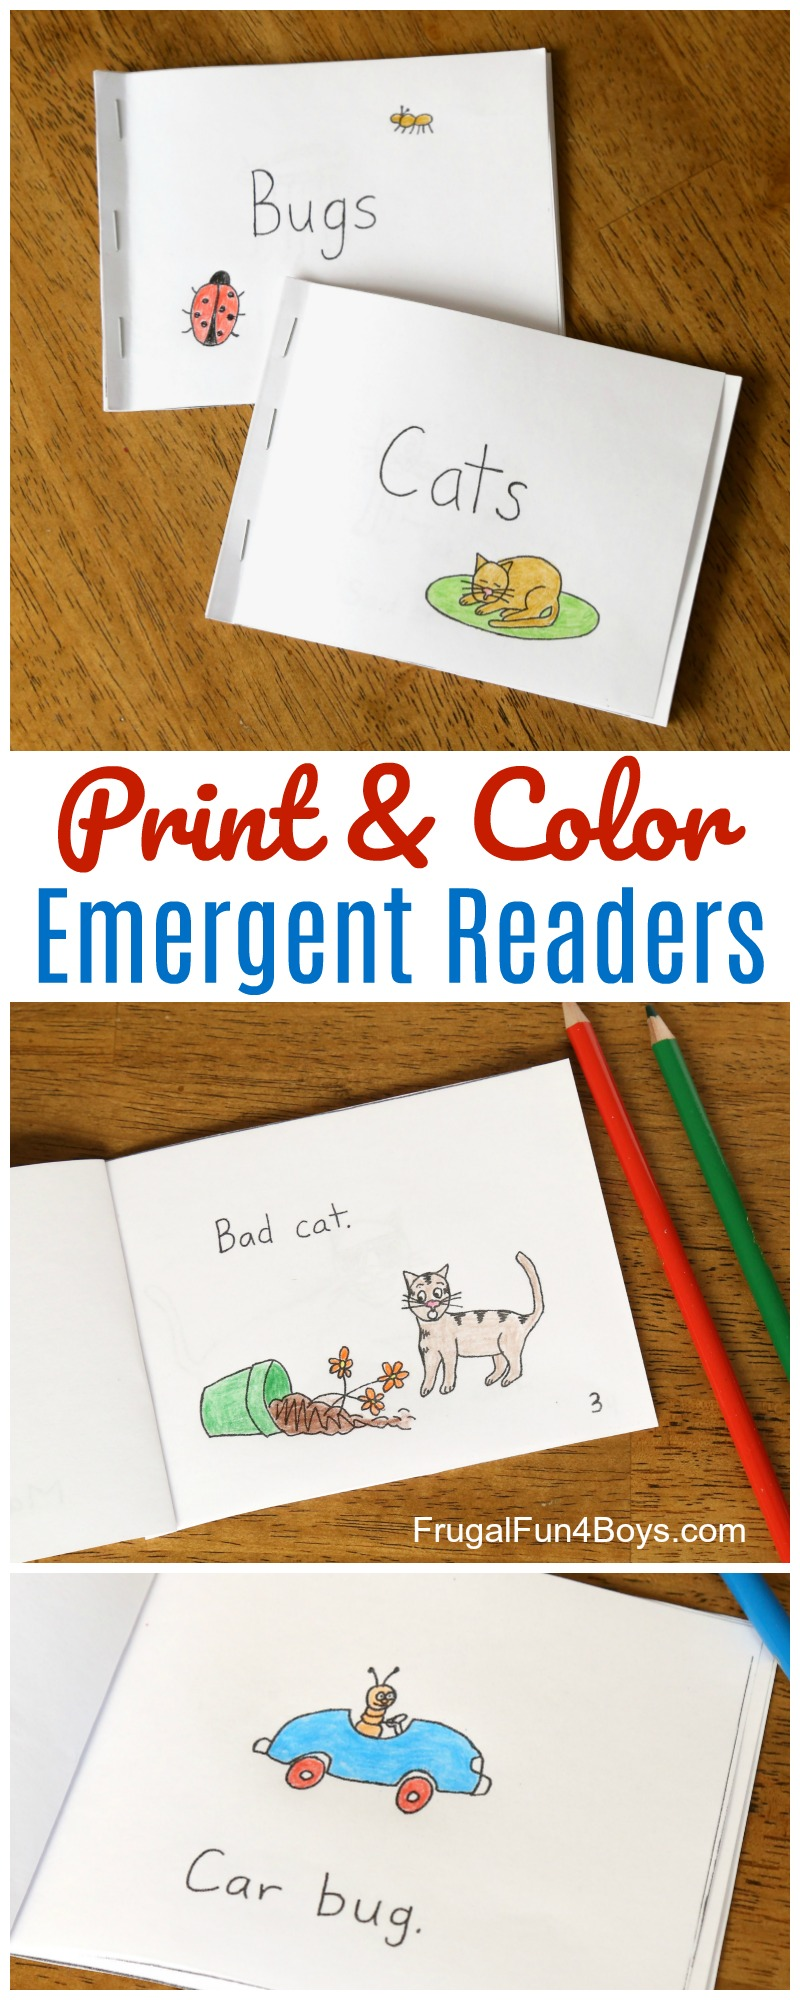 Free Printable Books For Beginning Readers Level 1 Easy Frugal Fun For Boys And Girls